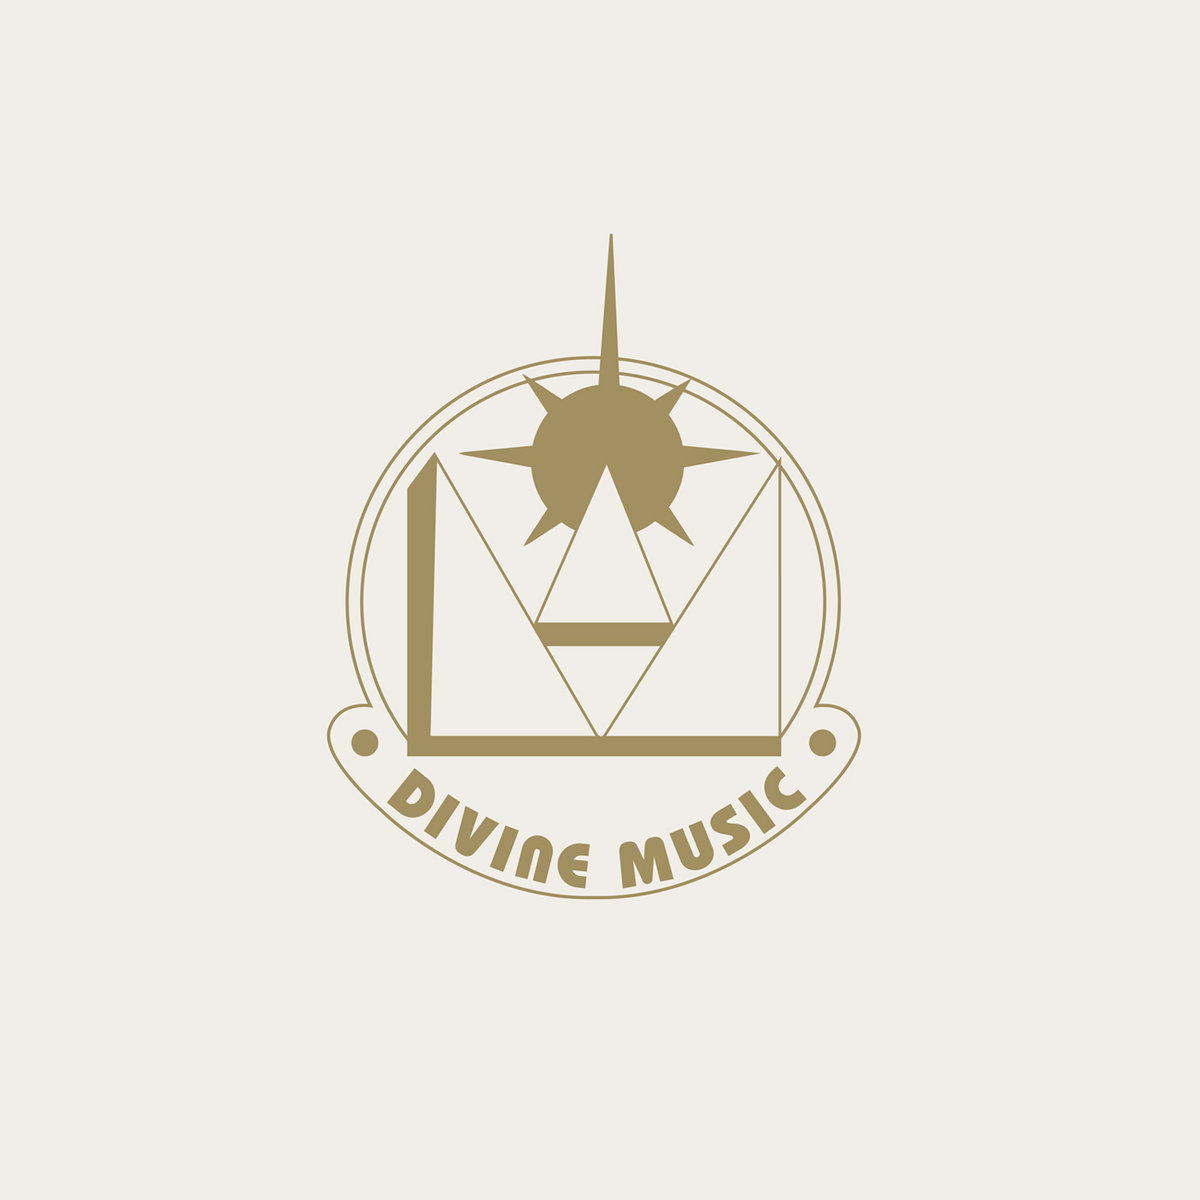 Awake to love brother ah following the reissues of brother ahs three studio albums in 2016 manufactured recordings is proud to present divine music a collection of three biocorpaavc